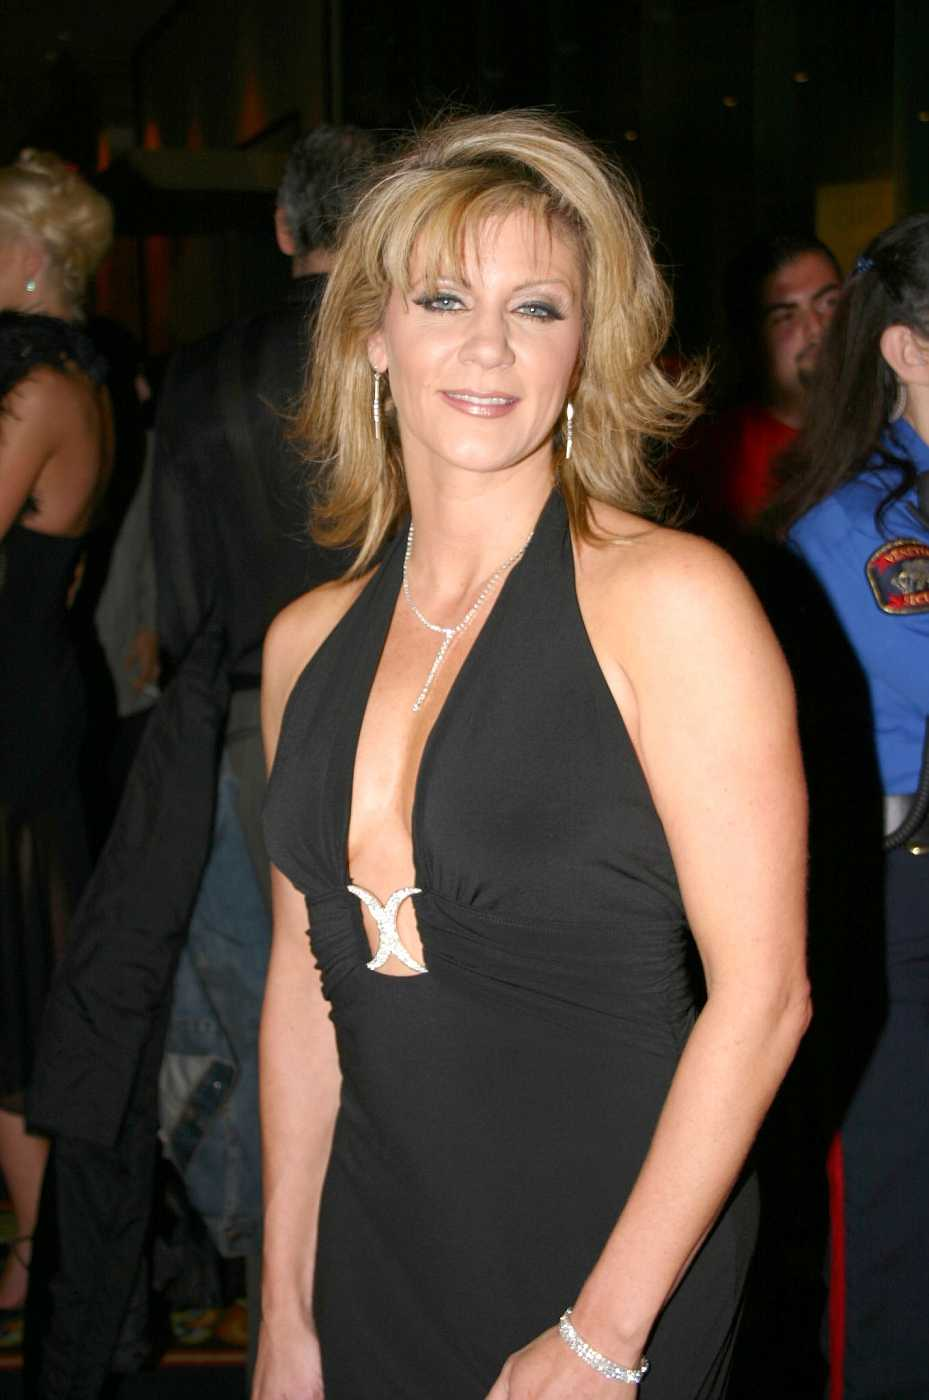 65 Ginger Lynn Allen Sexy Pictures That Proves She Is A Woman Of Substance - GEEKS ON COFFEE